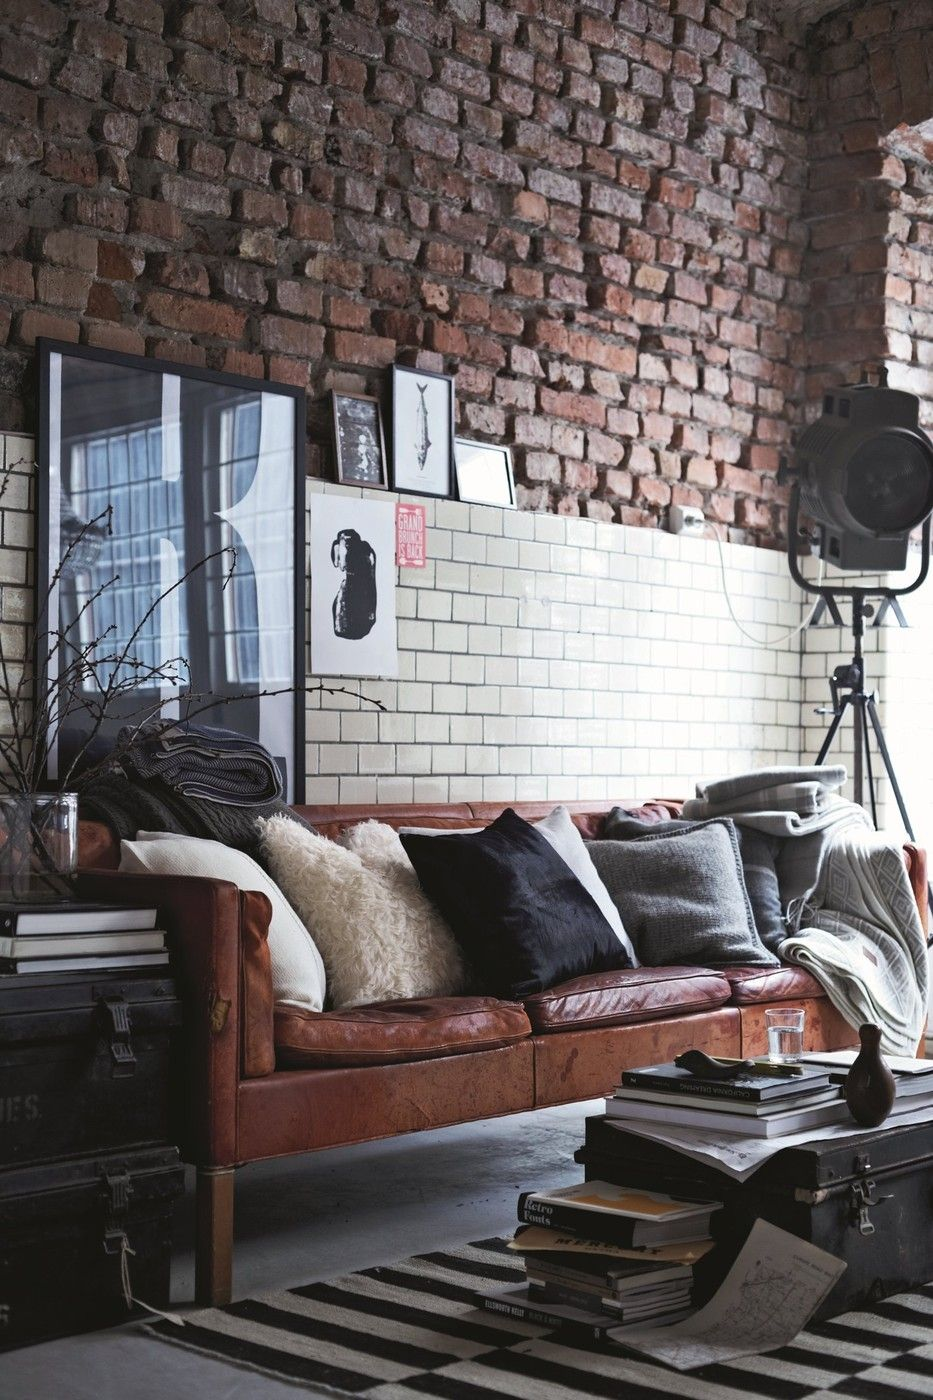 Ledersofa Industrial #living #room With #sofa Made Of #leather // #wohnzimmer